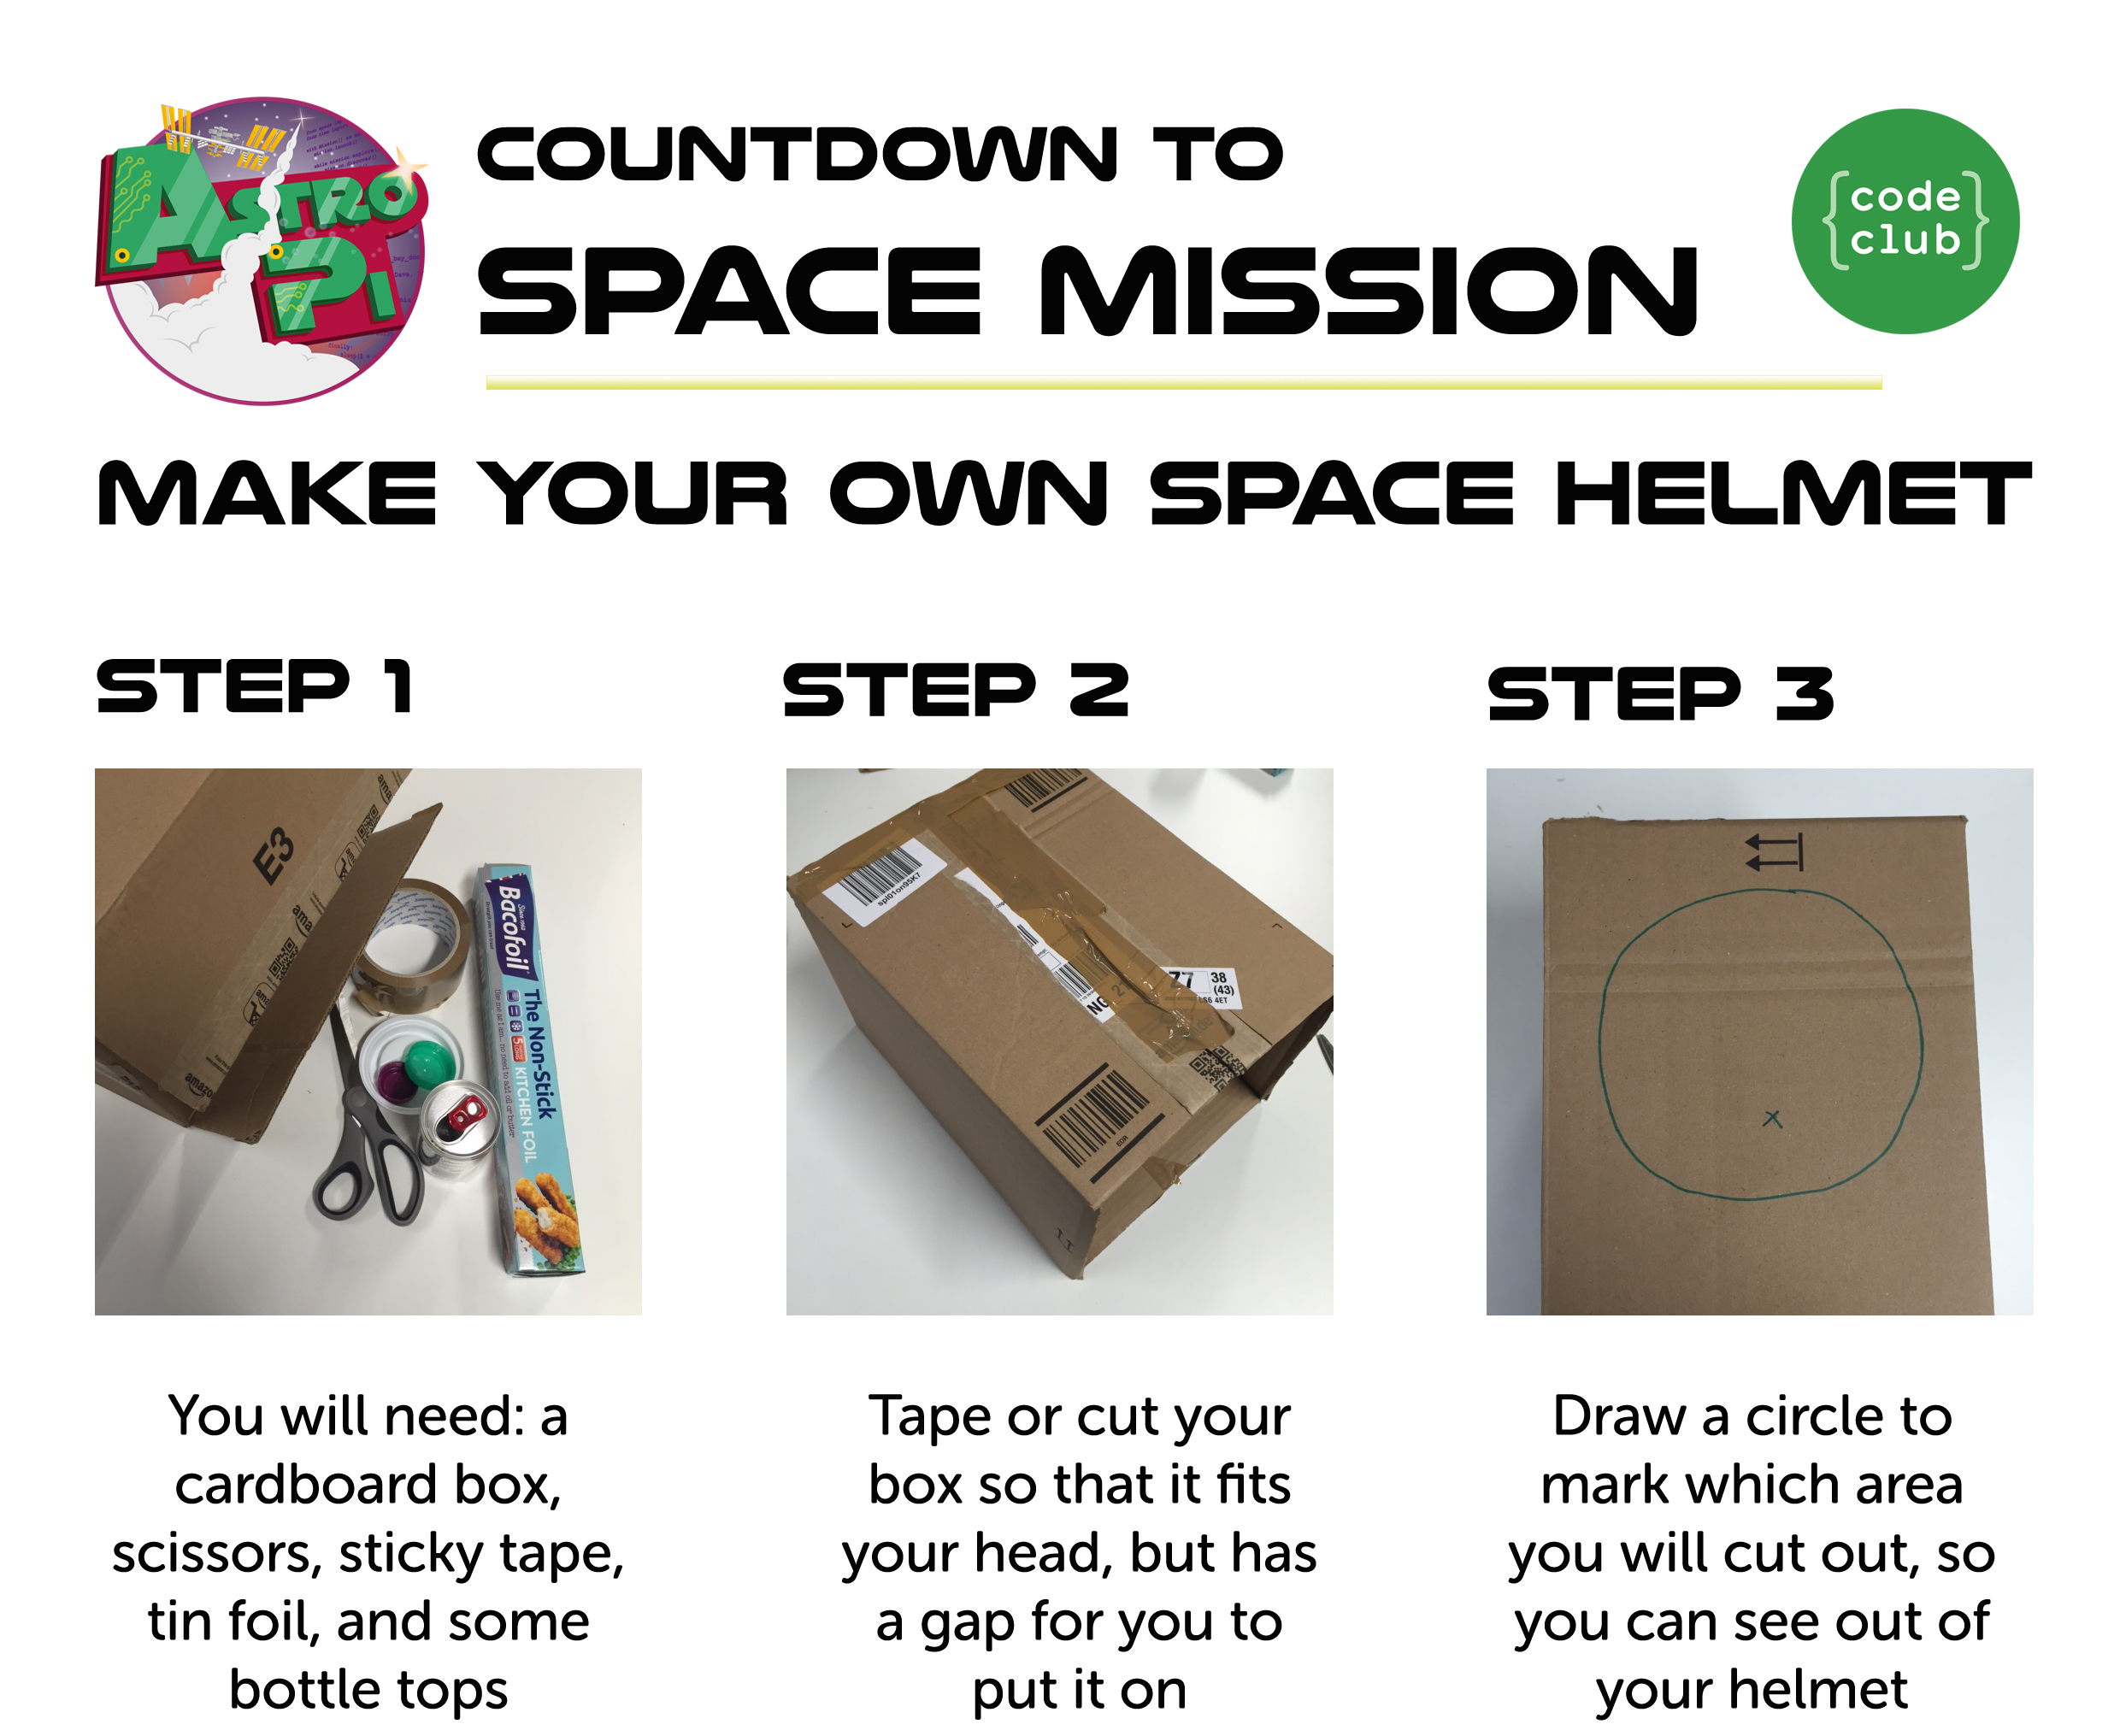 Countdown To Space Mission The Code Club Blog